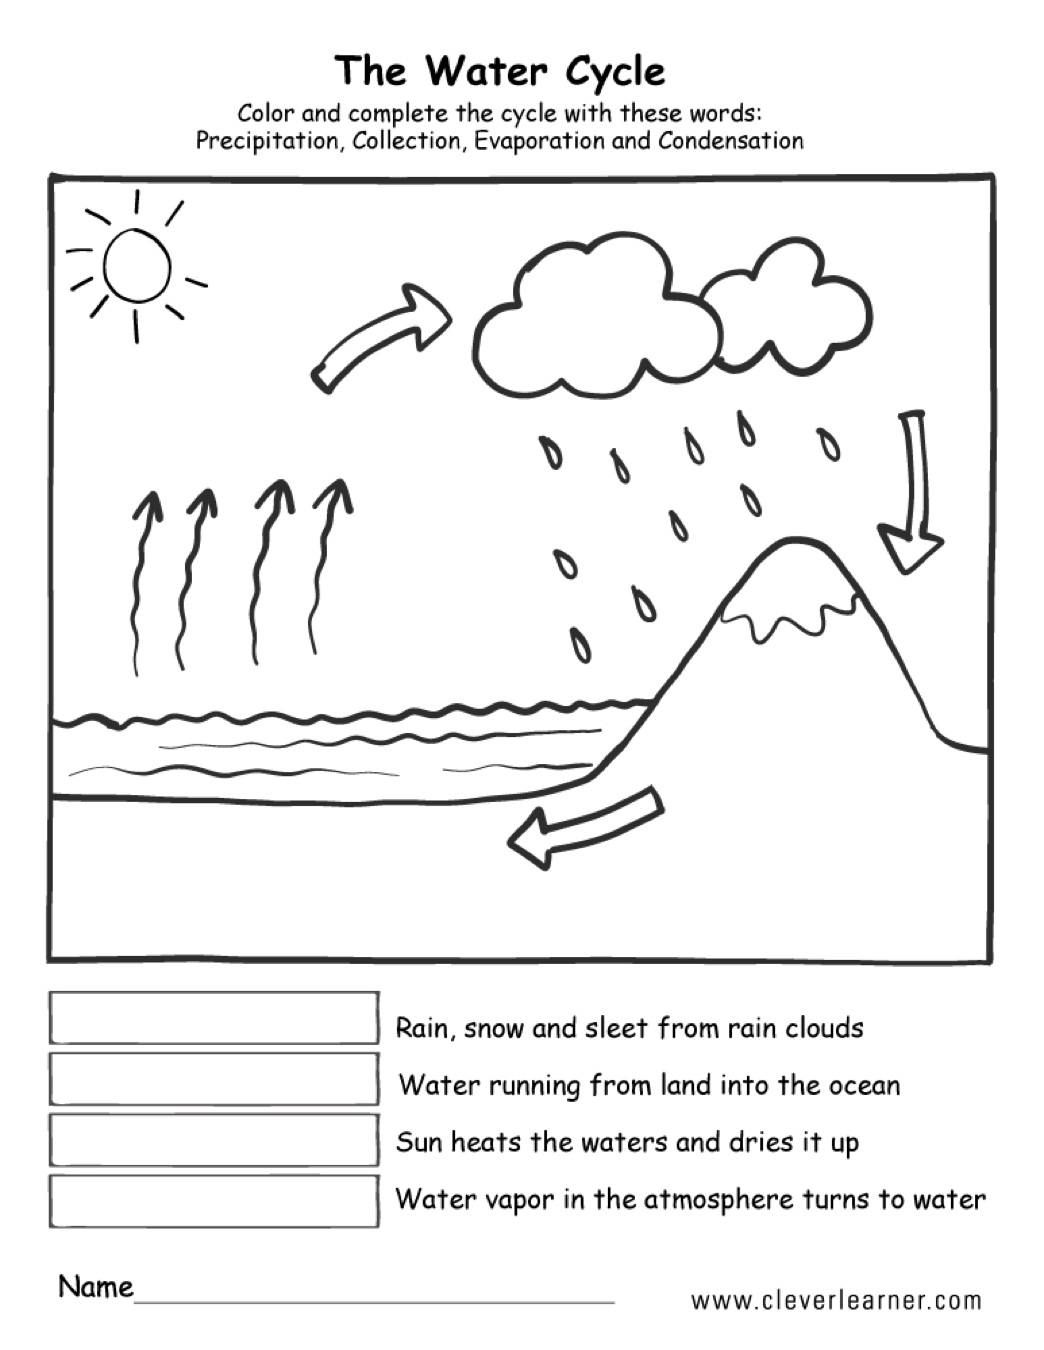 The Water Cycle Diagram Worksheet